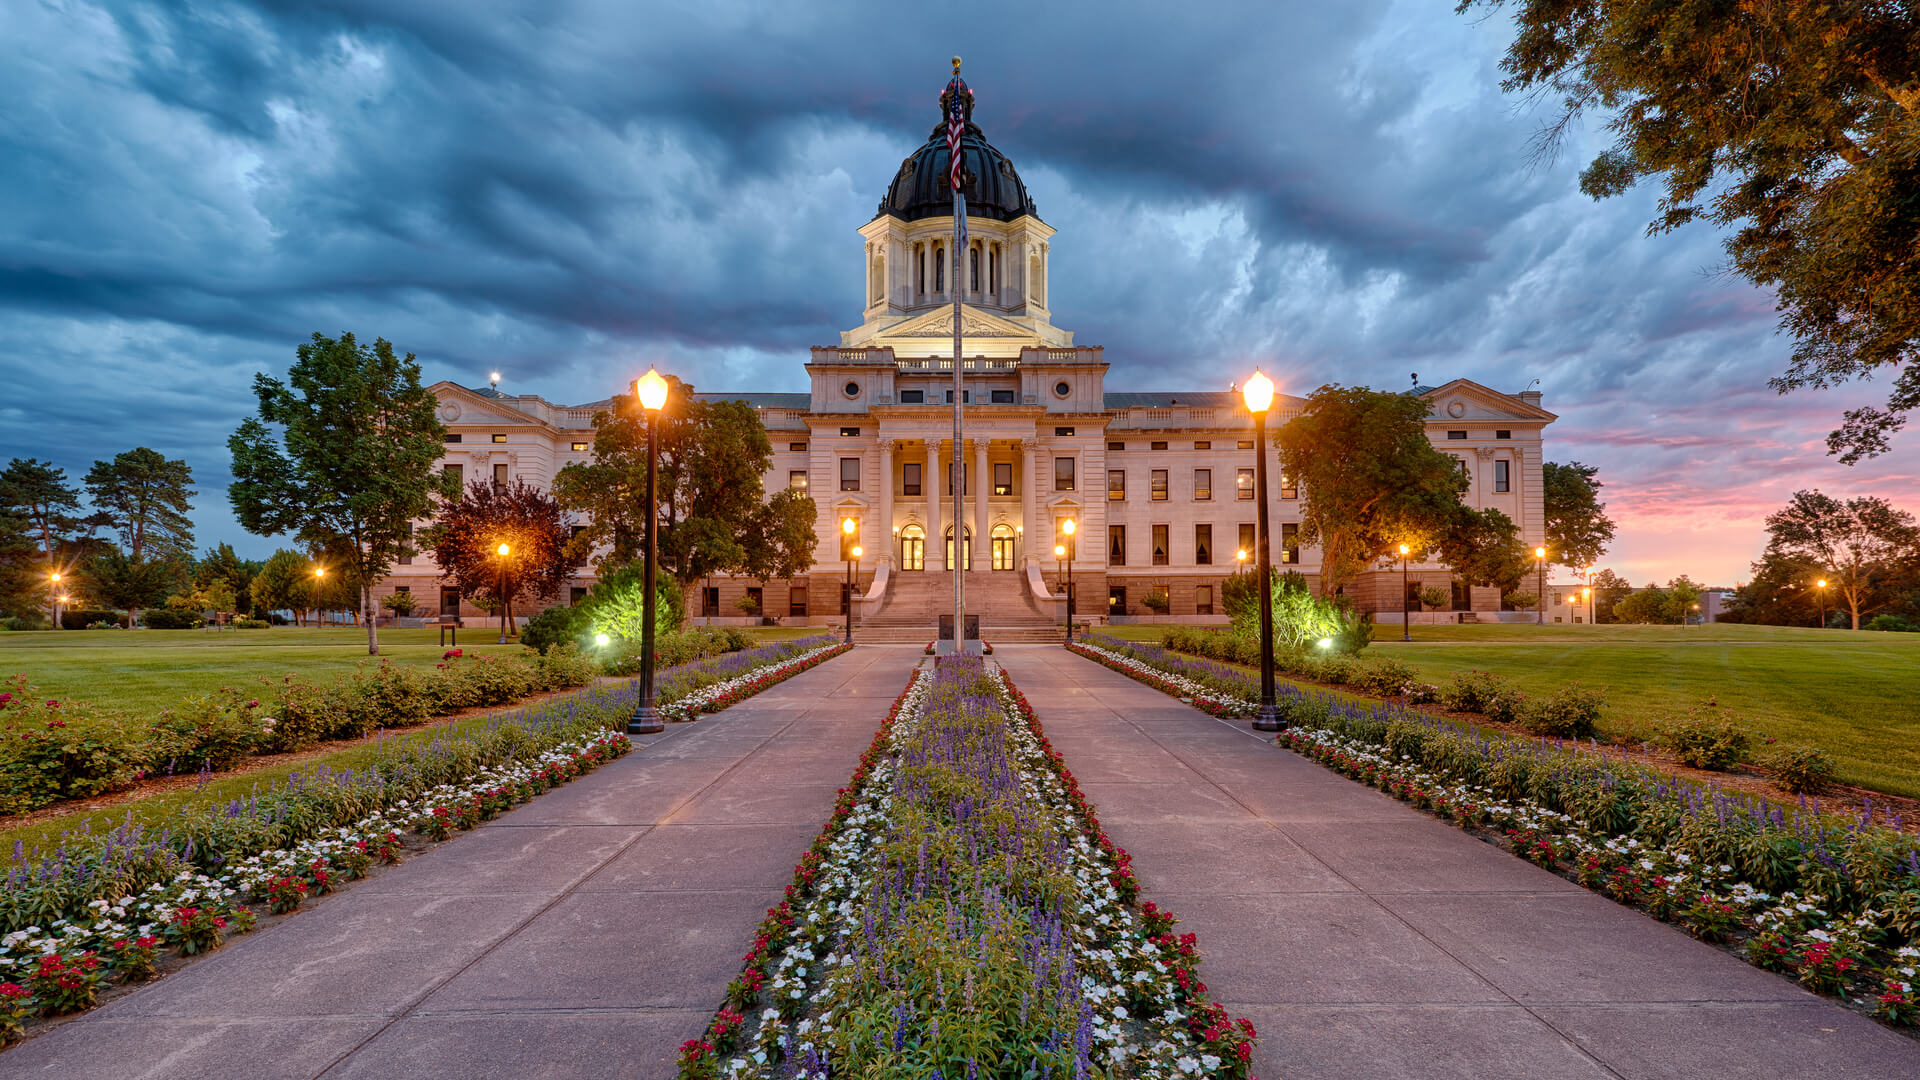 South Dakota State Capitol building in Pierre, South Dakota with a storm in the background